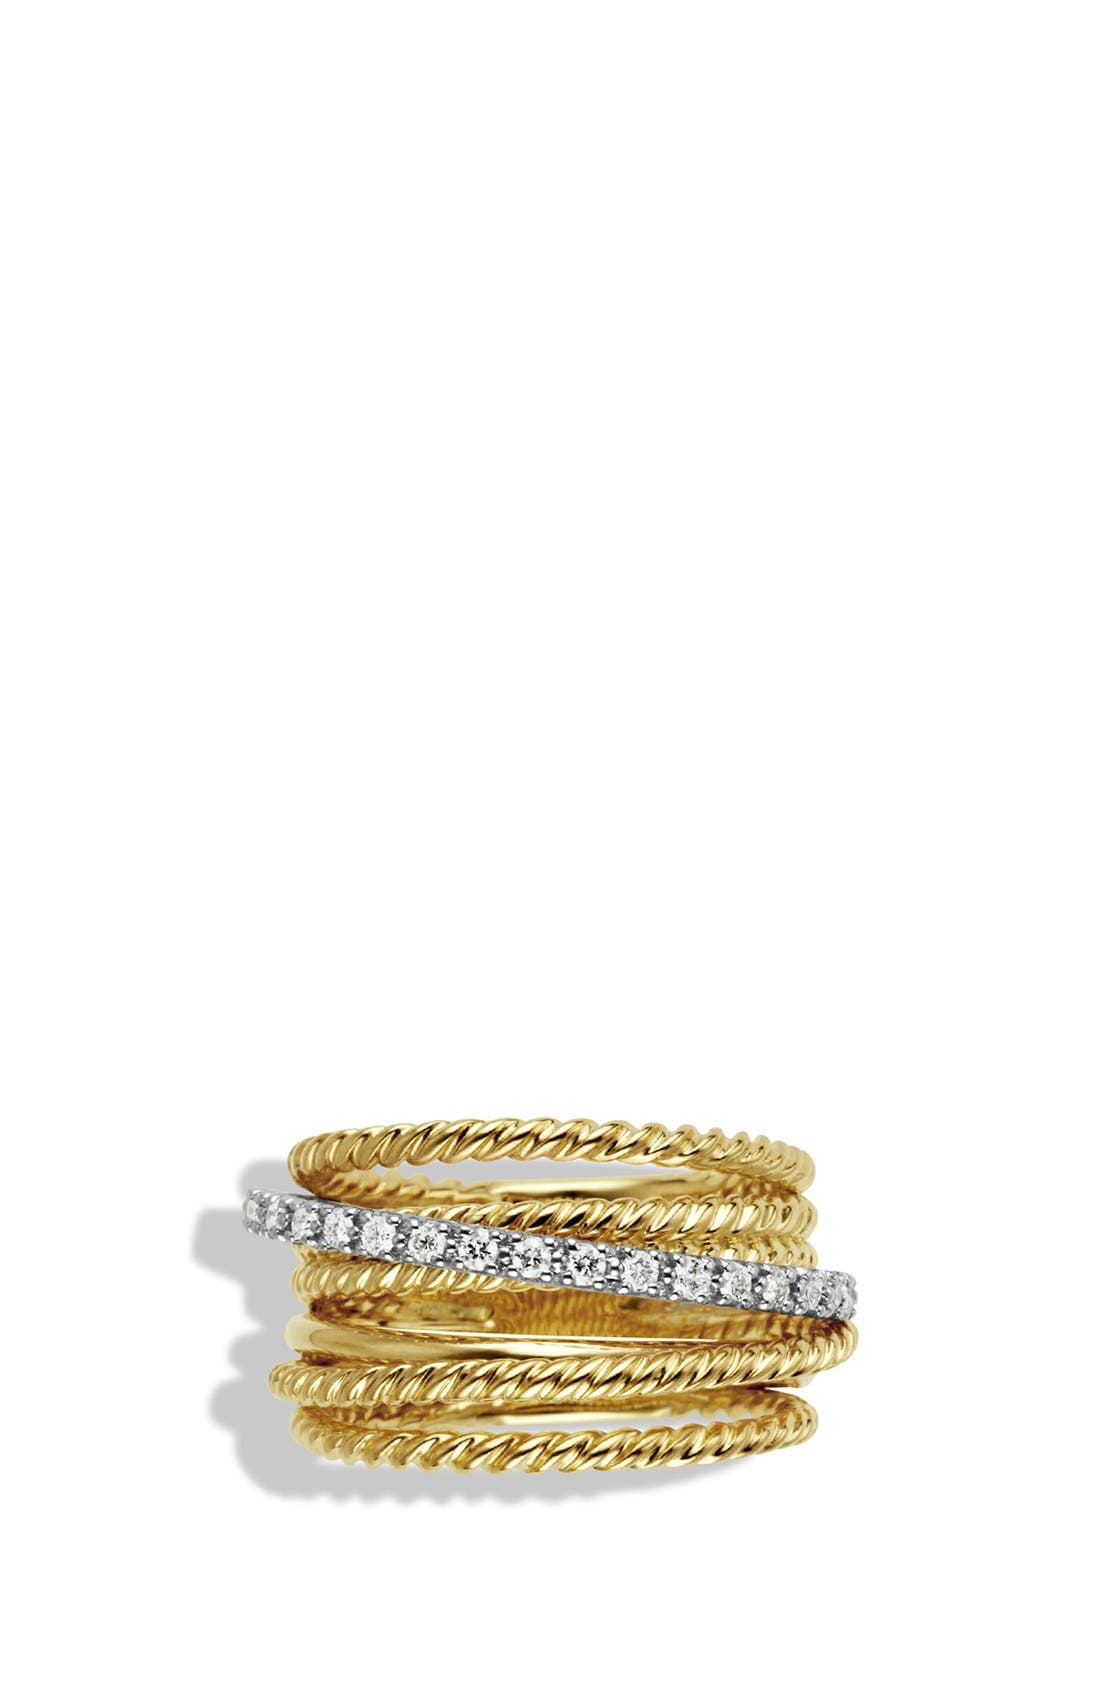 'DY Crossover' Ring with Diamonds in Gold,                             Alternate thumbnail 3, color,                             Diamond